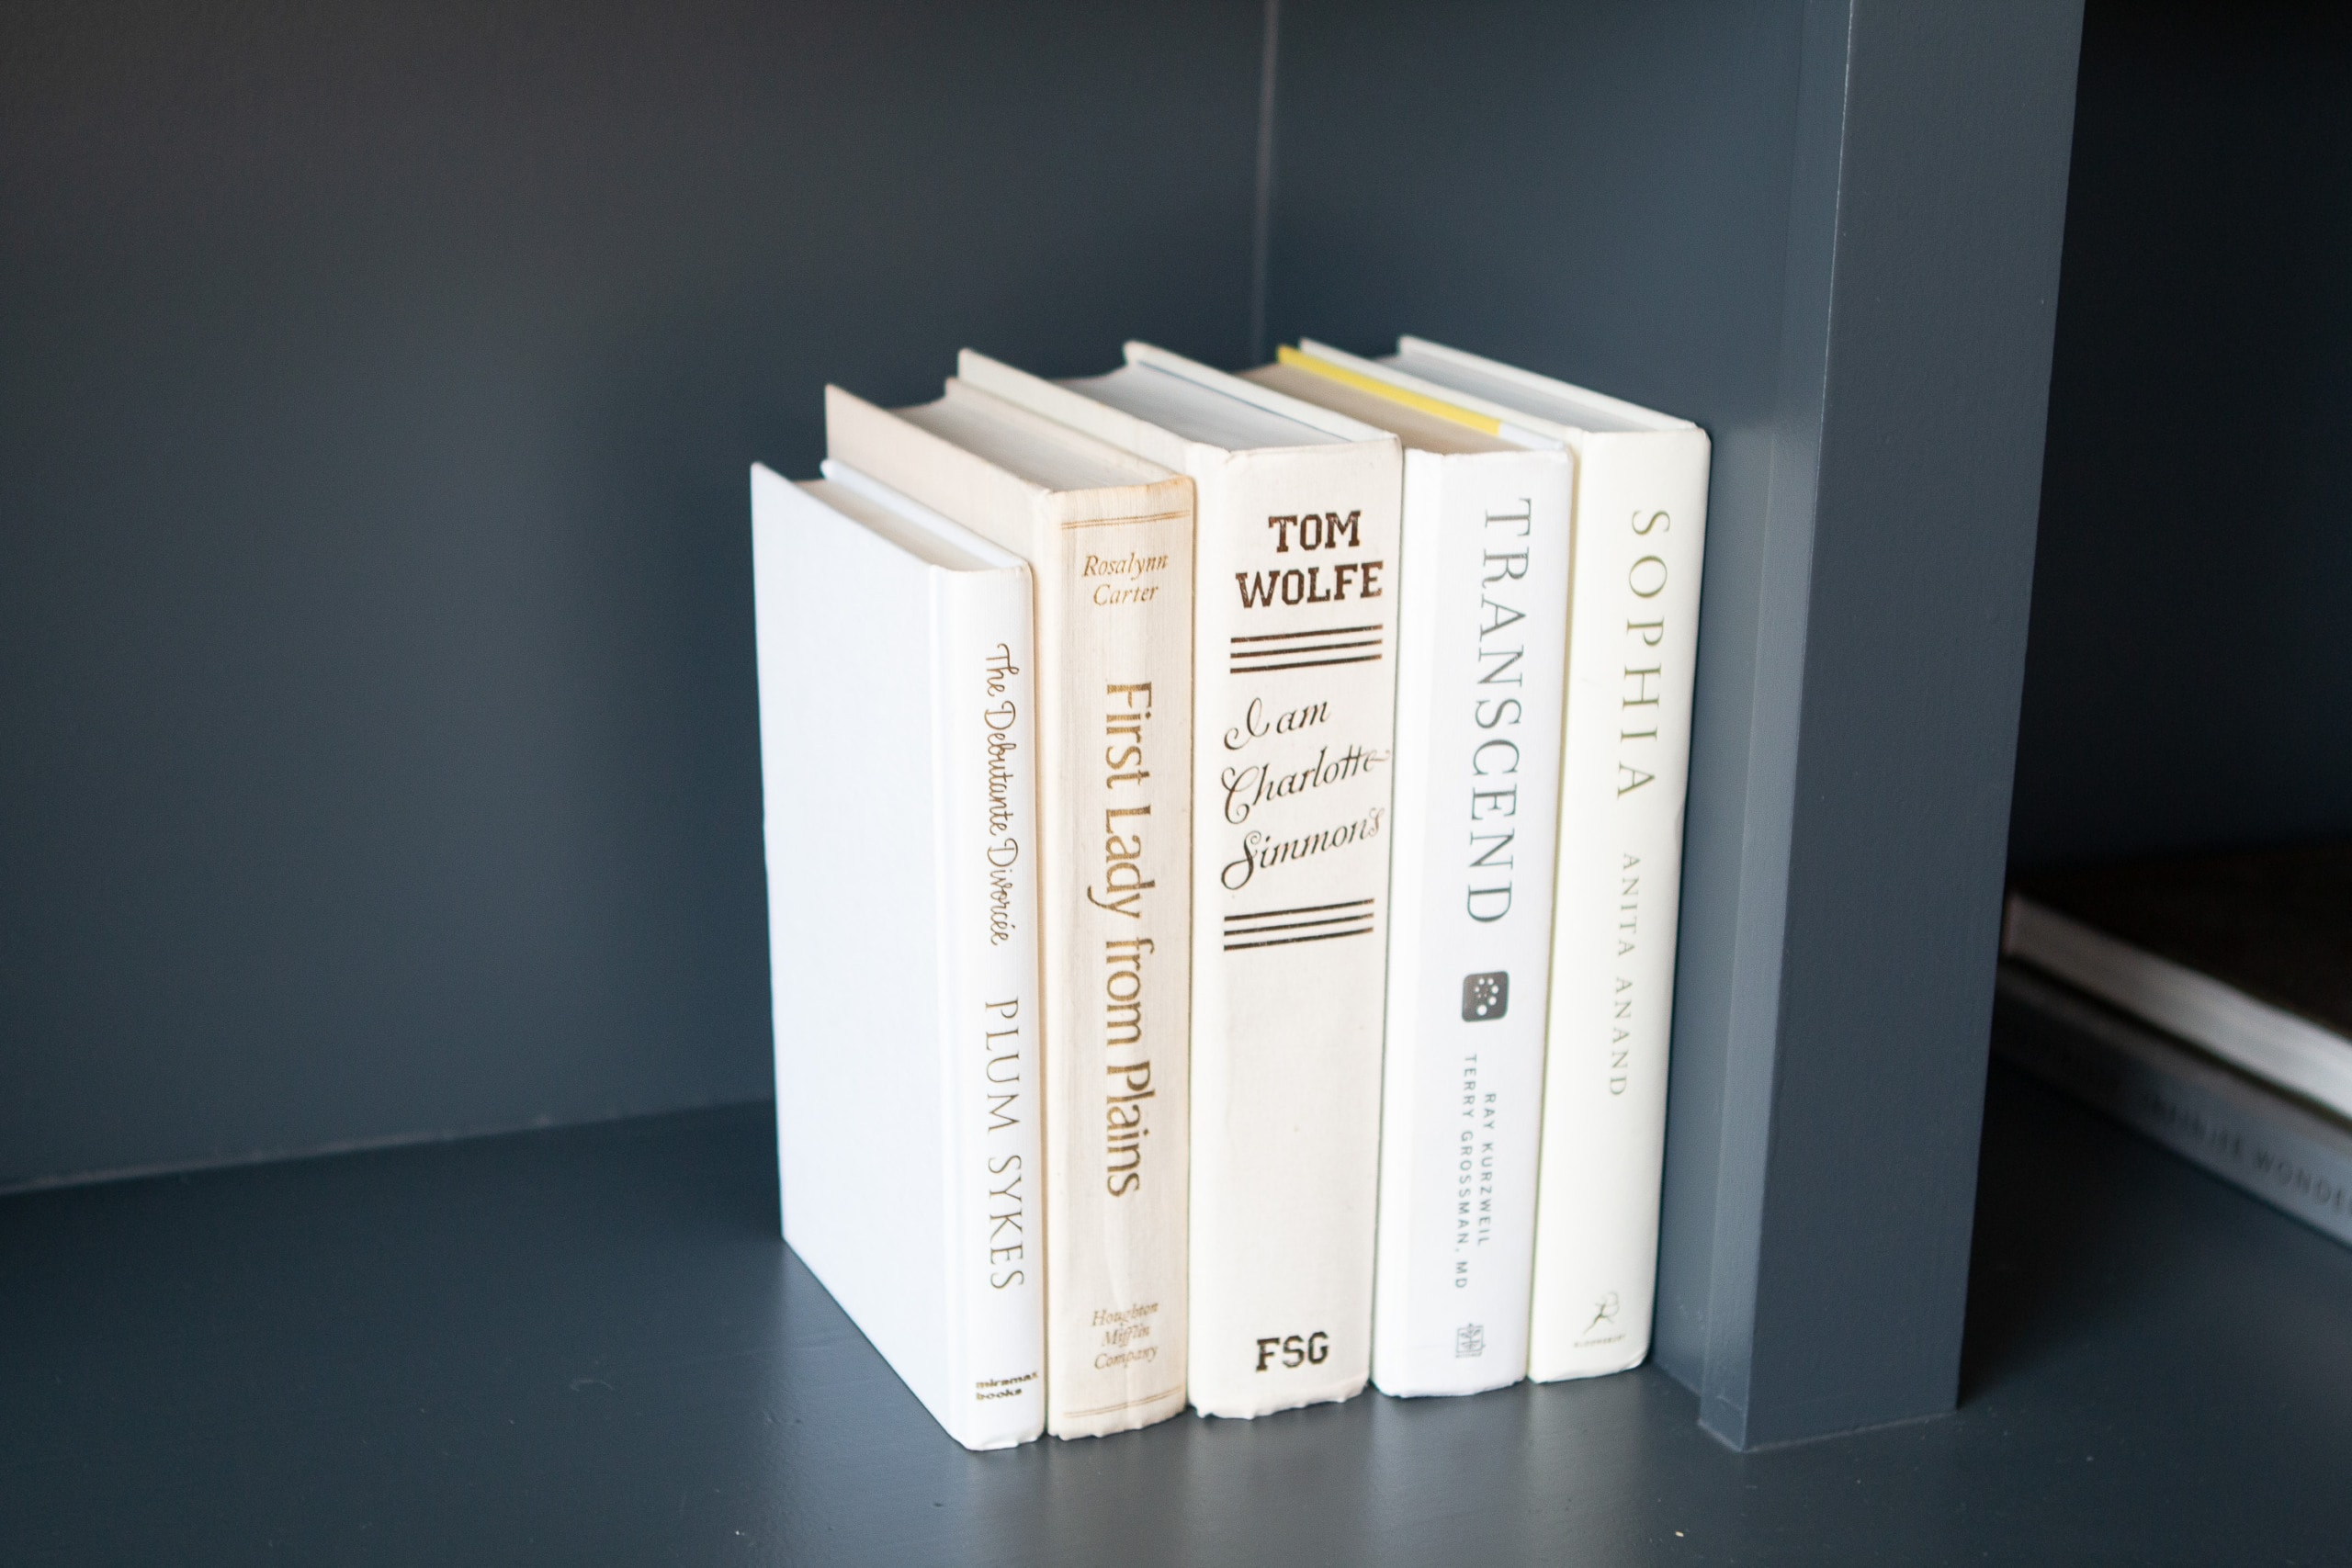 White hardcover books